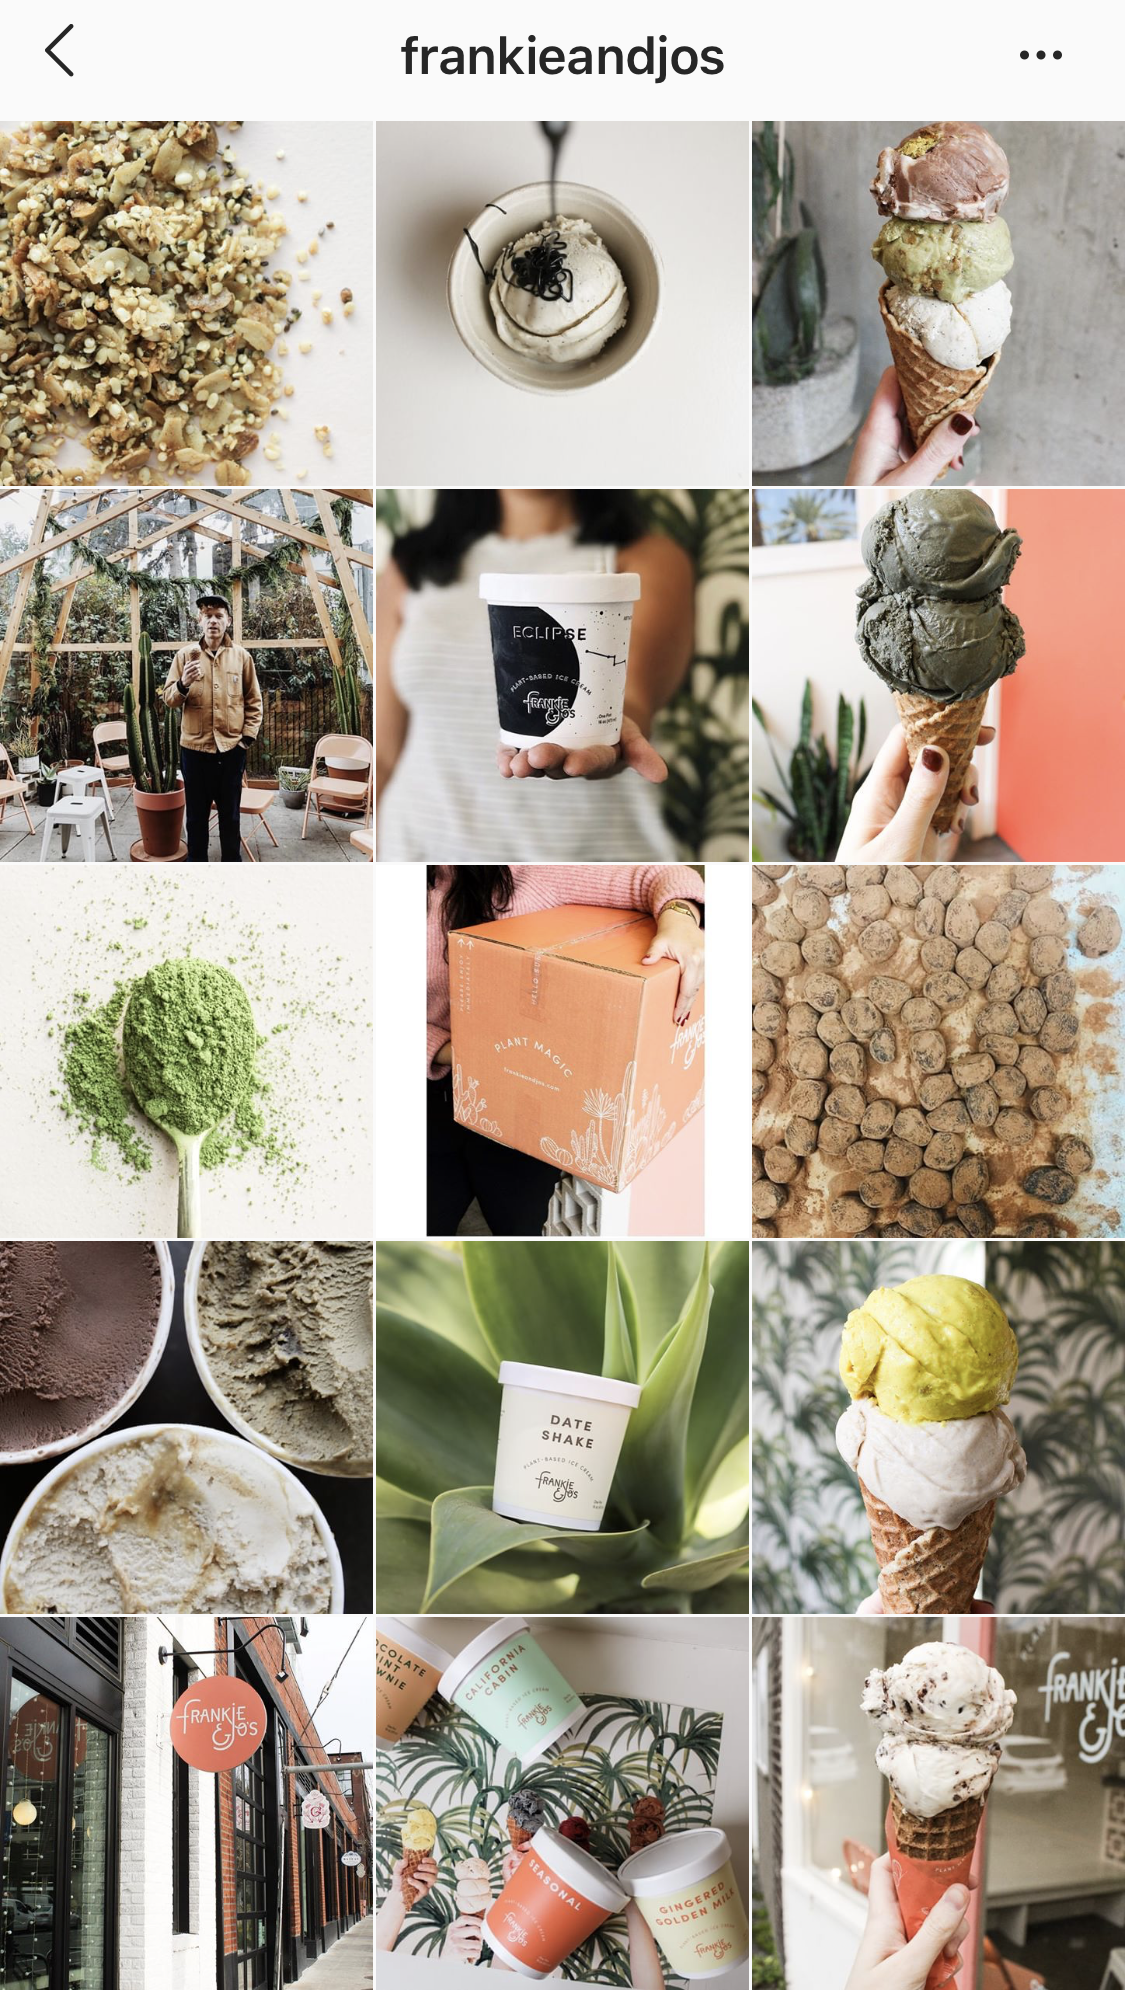 Frankie and Jos plant based ice cream know exactly how to tell their brand story through visuals on their Instagram. A muted, focused color palette with a focus on gorgeous shots of their product and ingredients. Brand photography done right!